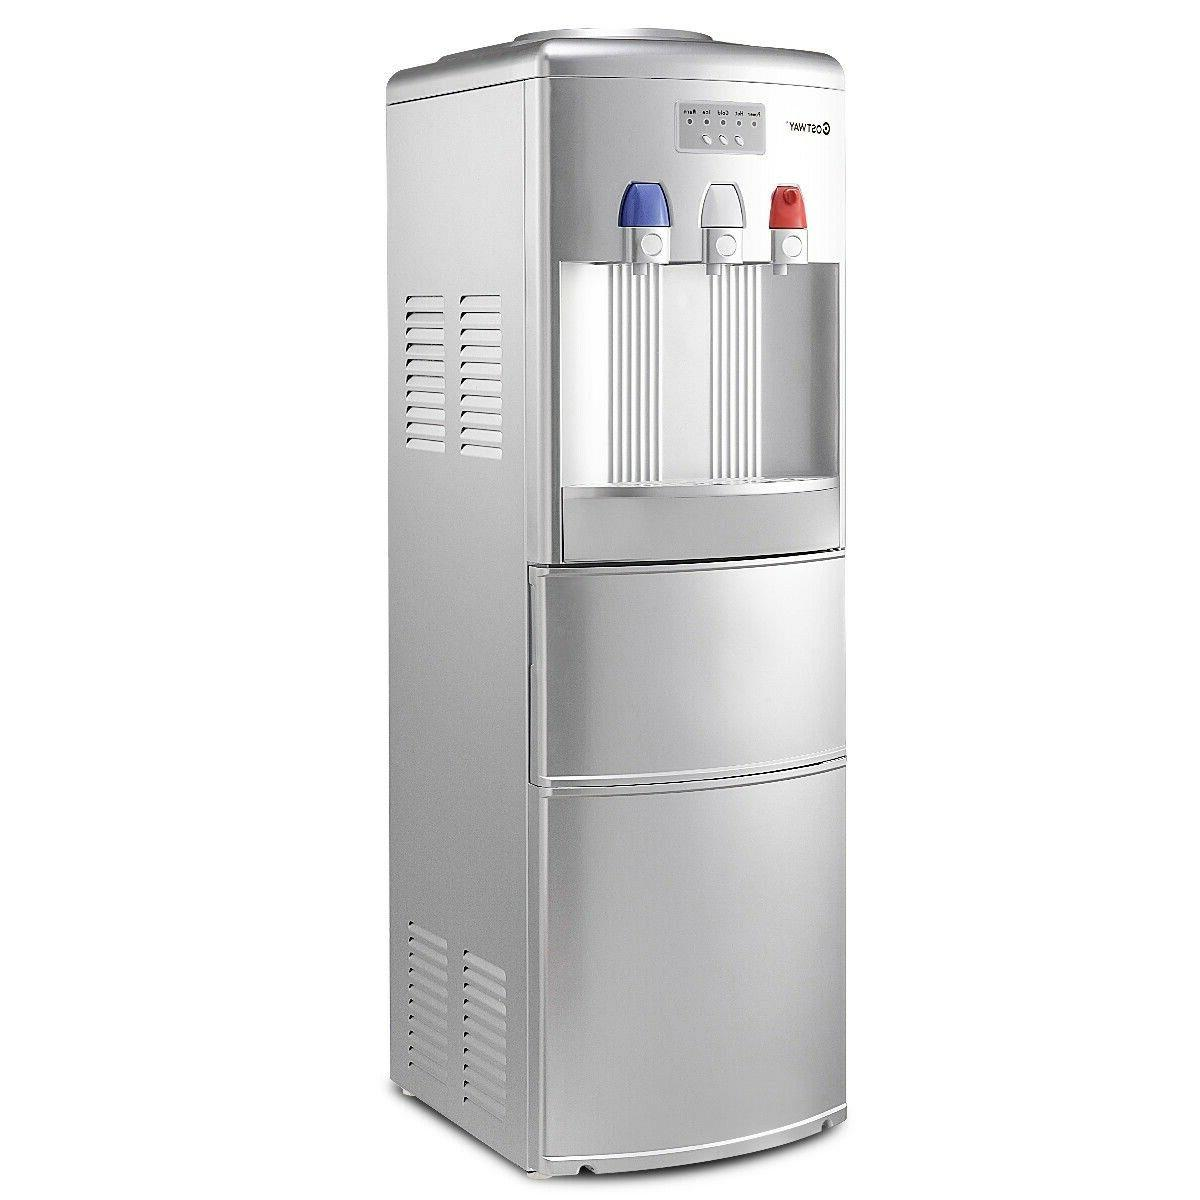 Top Loading Water Dispenser with Built-In Ice Maker Machine